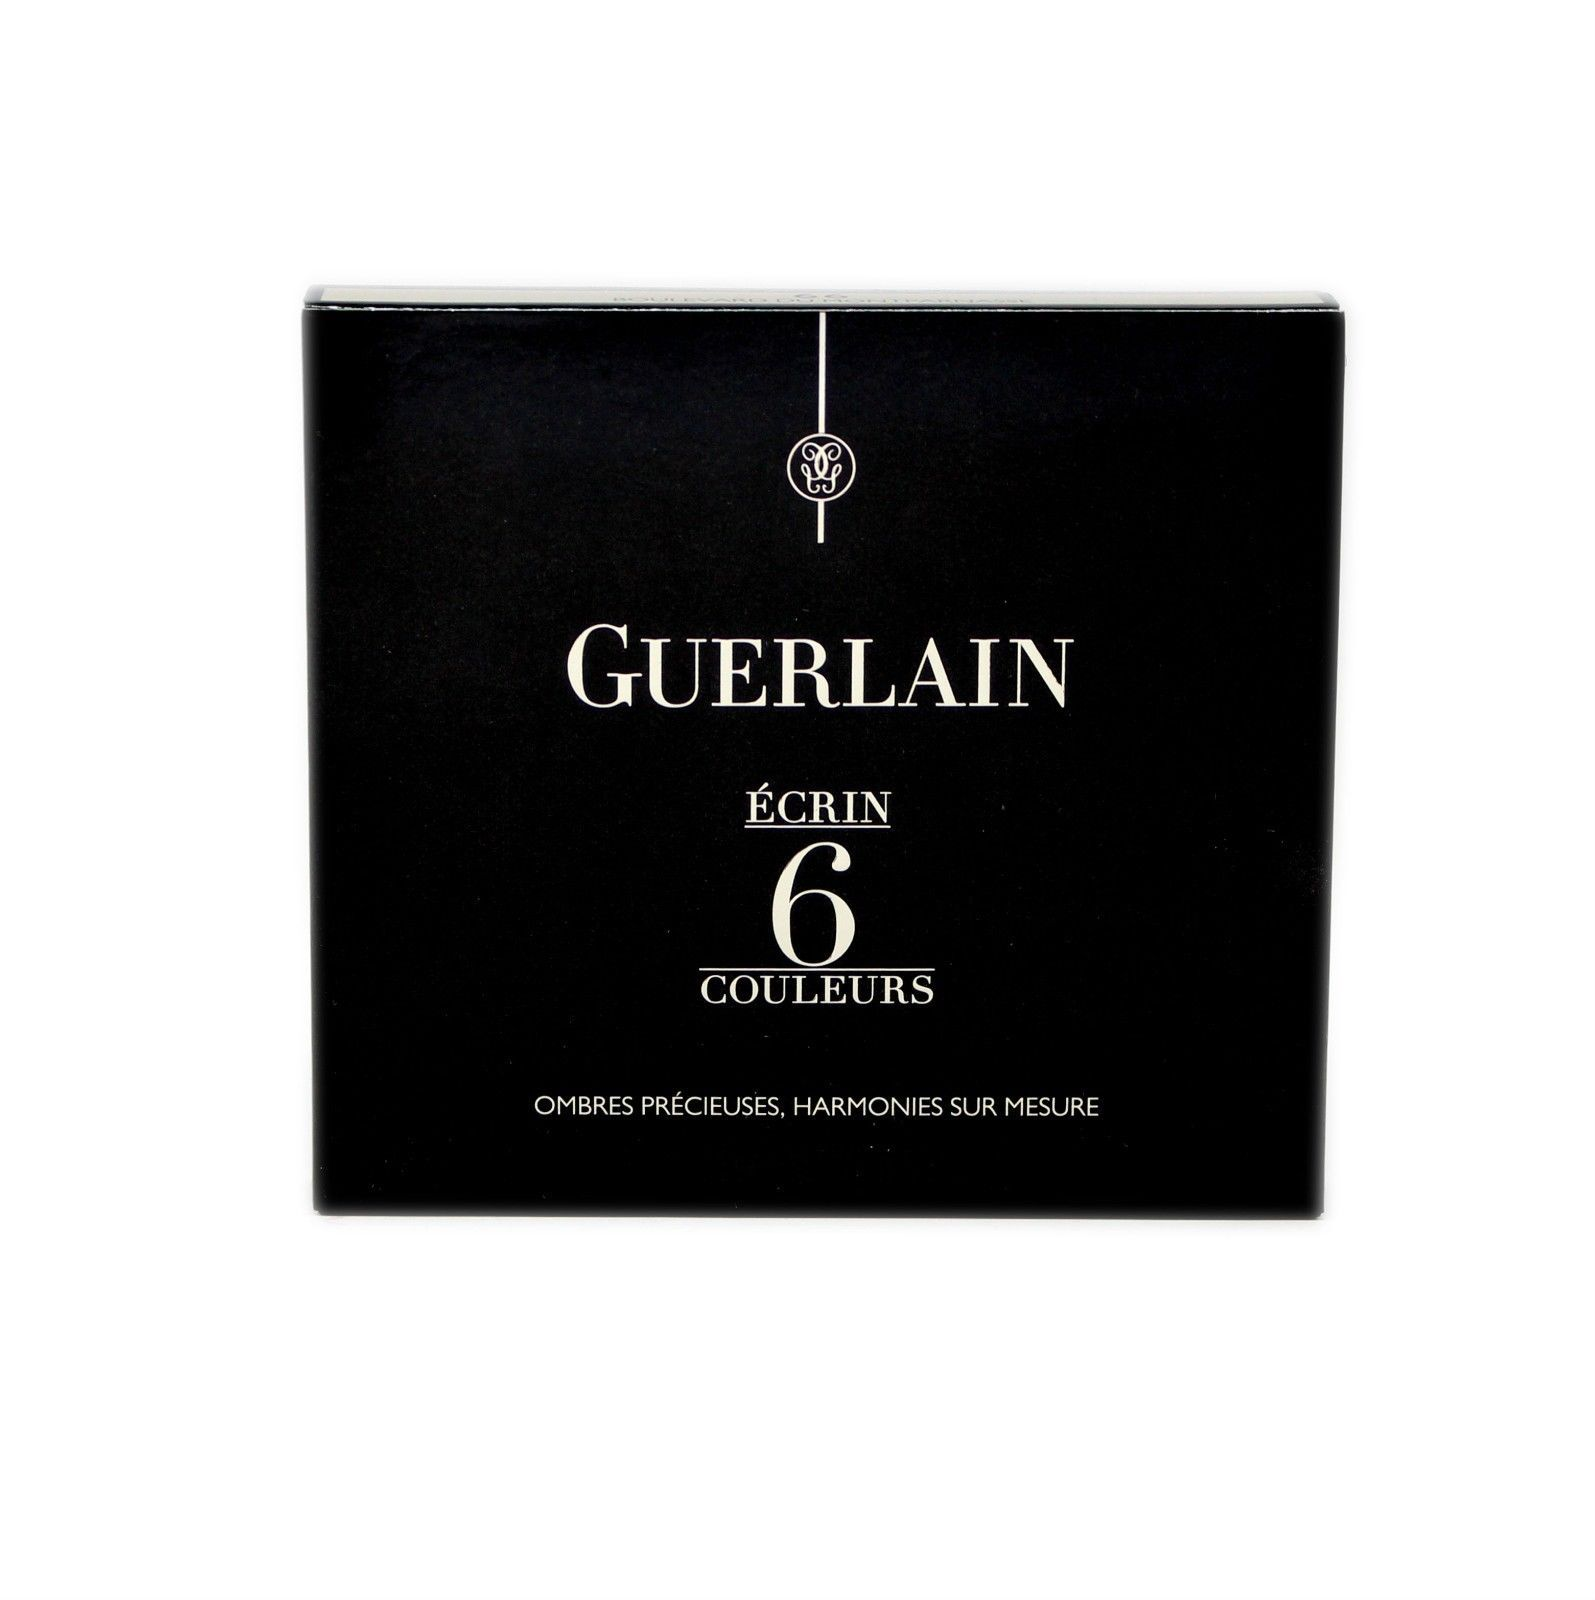 Primary image for GUERLAIN ECRIN 6 COULEURS PRECIOUS EYESHADOWS,TAILORED HARMONIES 7.3G #66-G41252